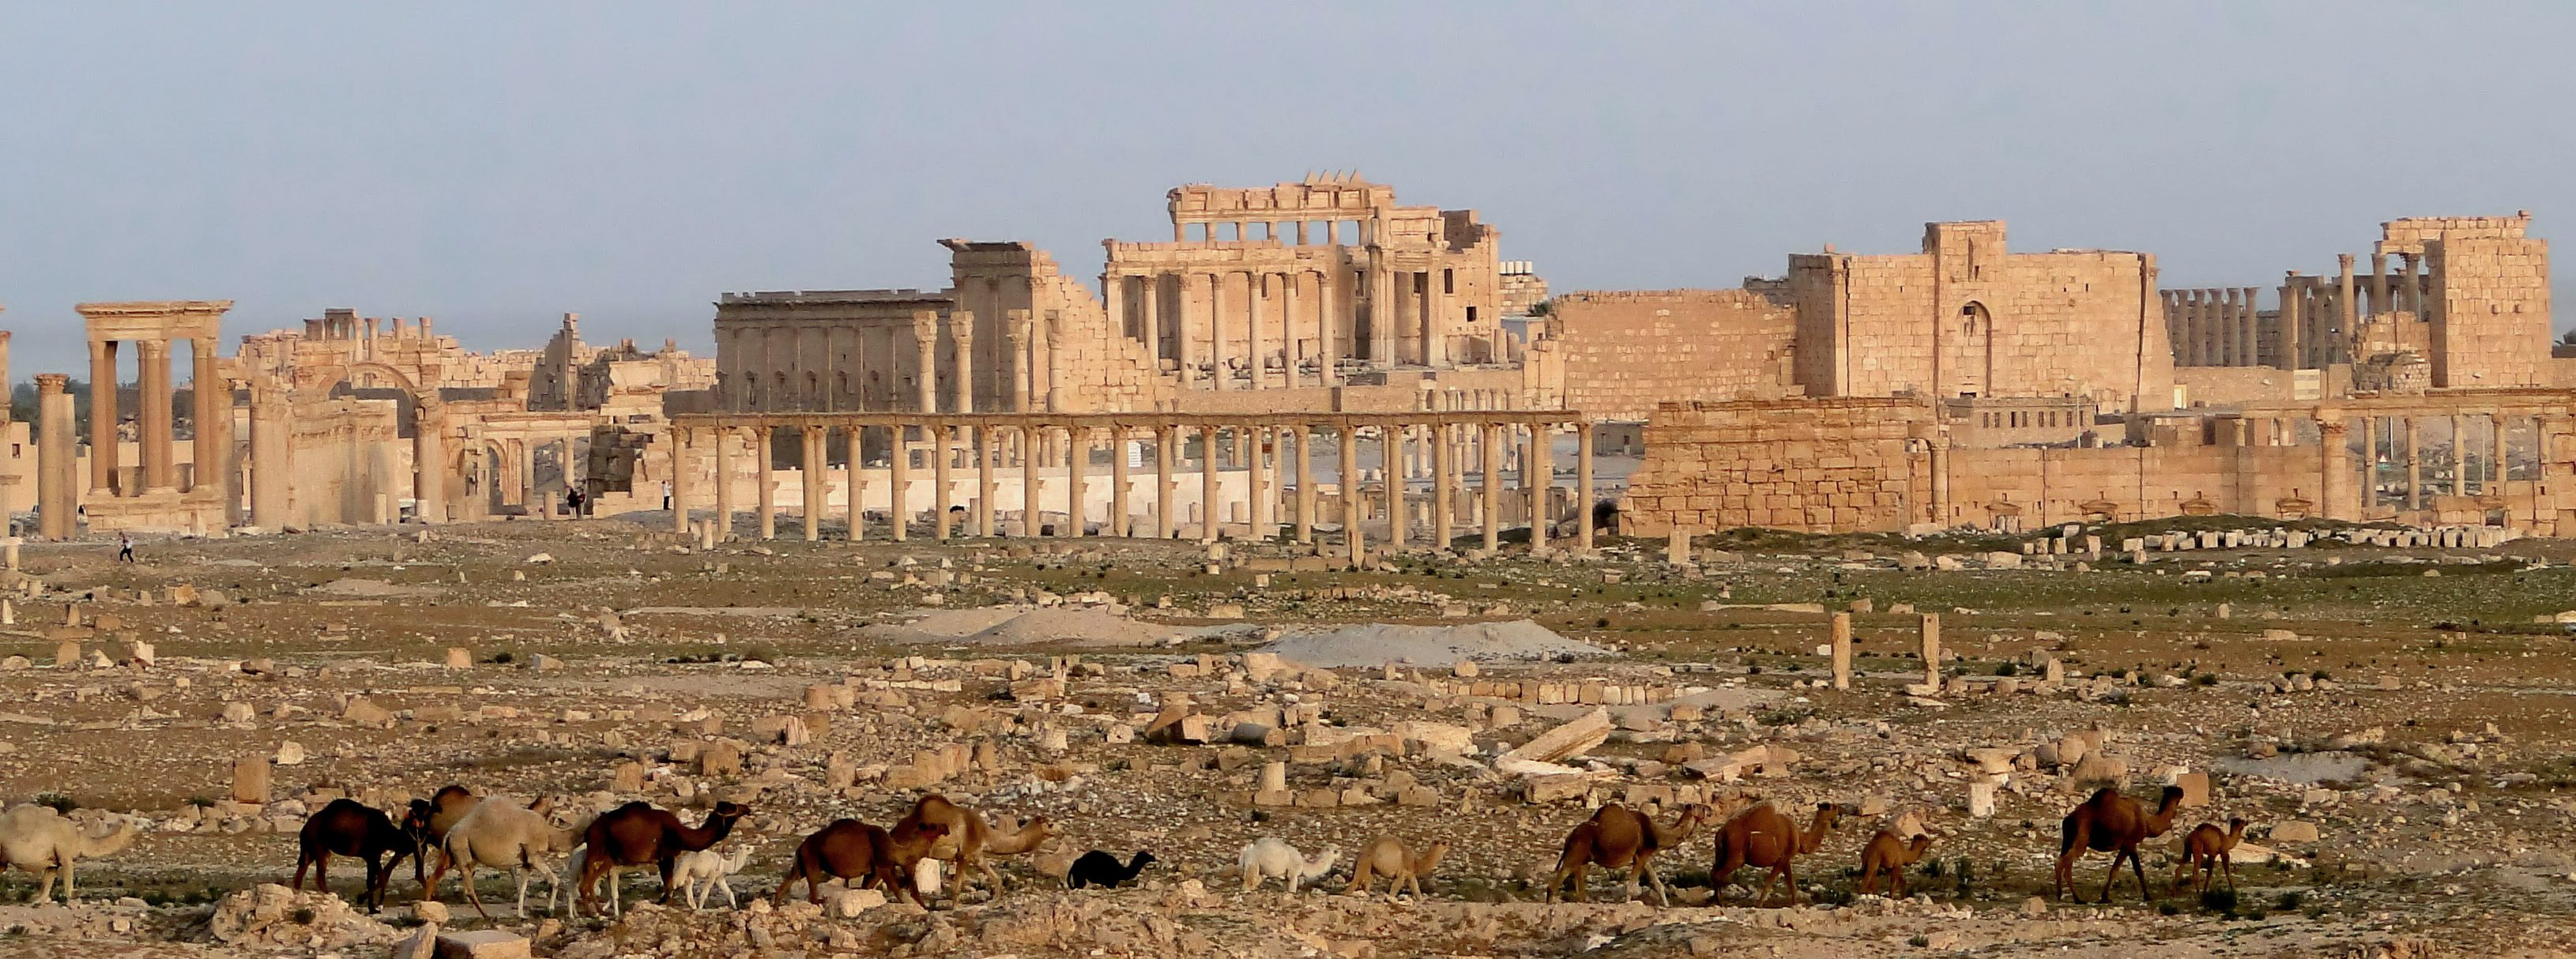 Palmyra ancient site in 2010